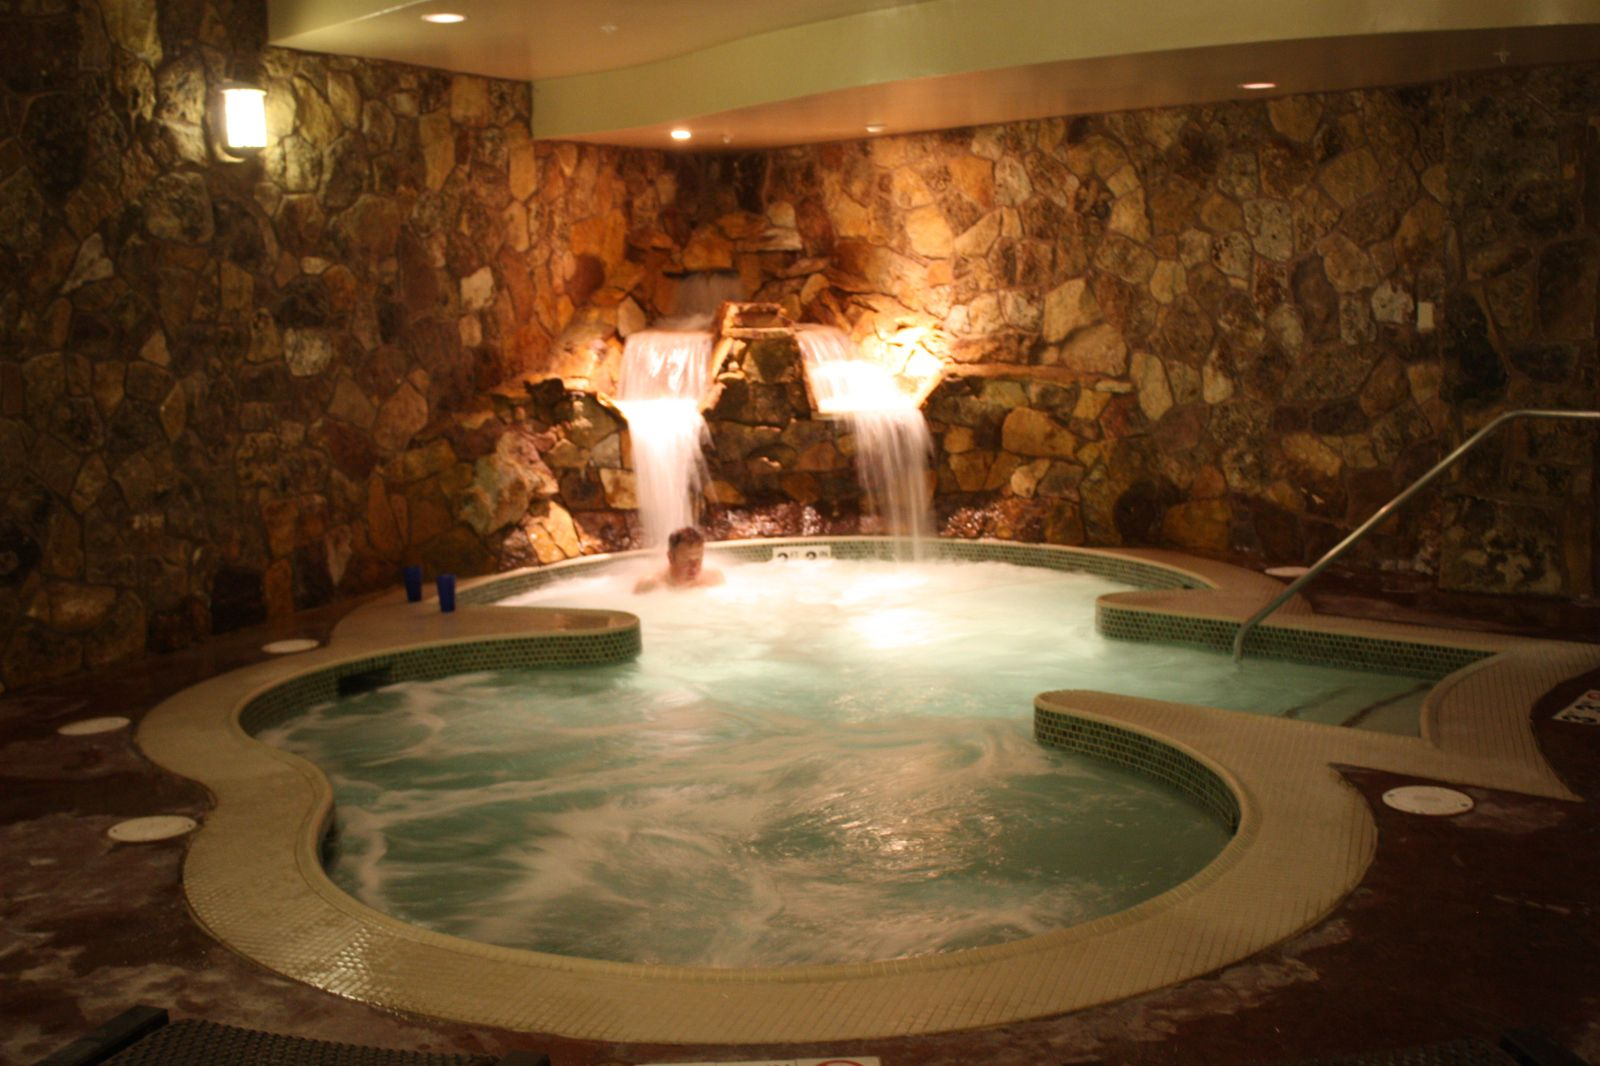 Grand Lodge Peak 7 The Grotto Hot Tub Room Indoor Jacuzzi Home Spa Room